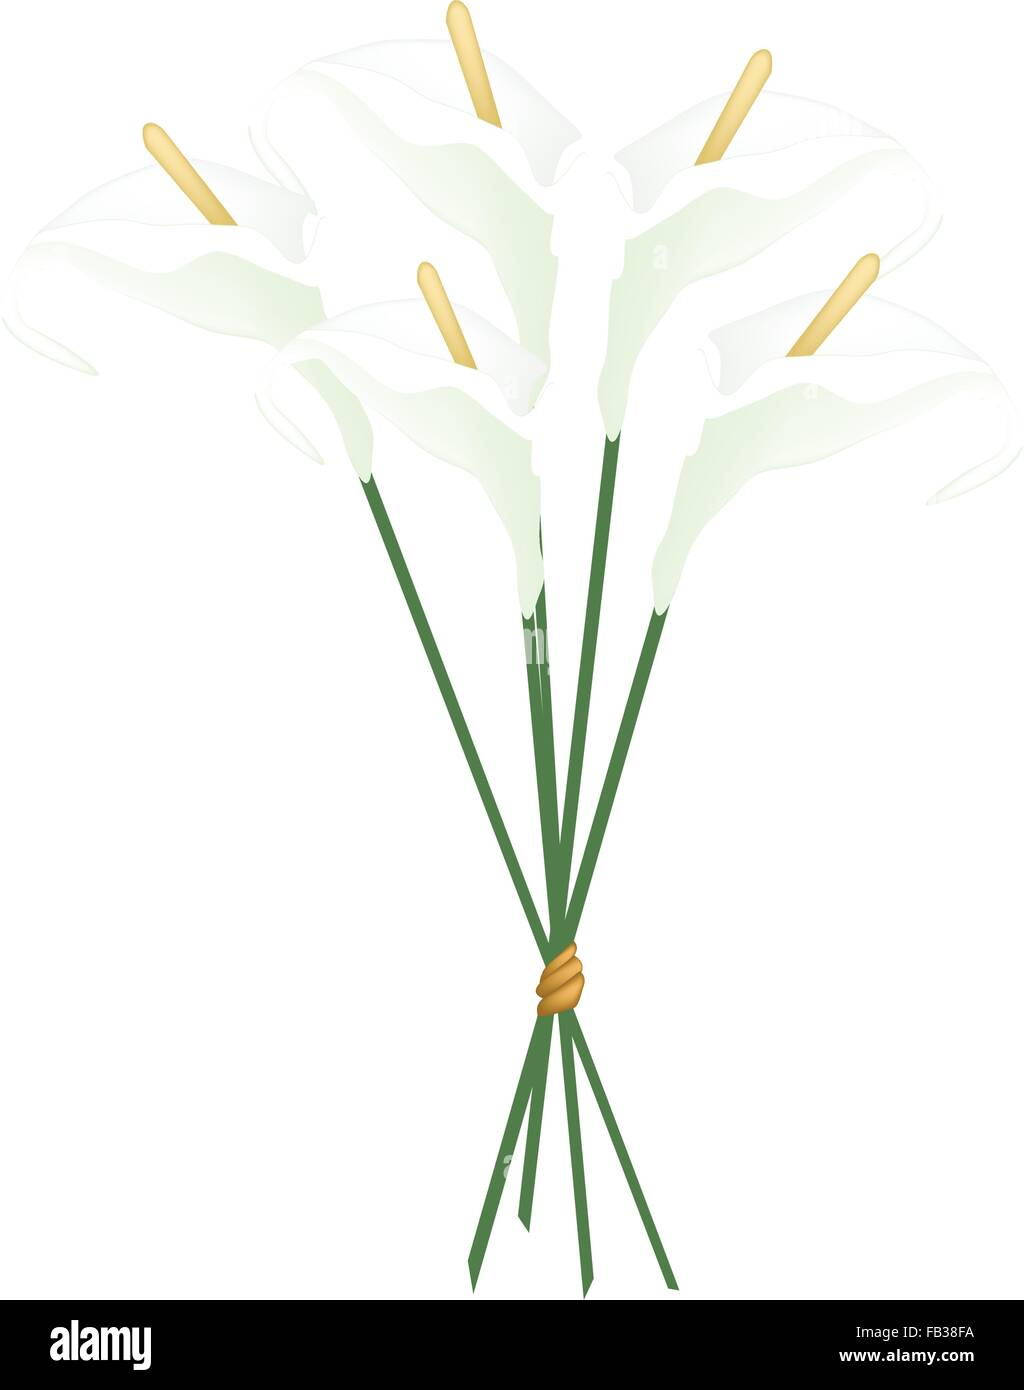 Beautiful Flower, Illustration of Bouquet of White Anthurium Flower or Flamingo Flower with Green Leaves Isolated - Stock Vector